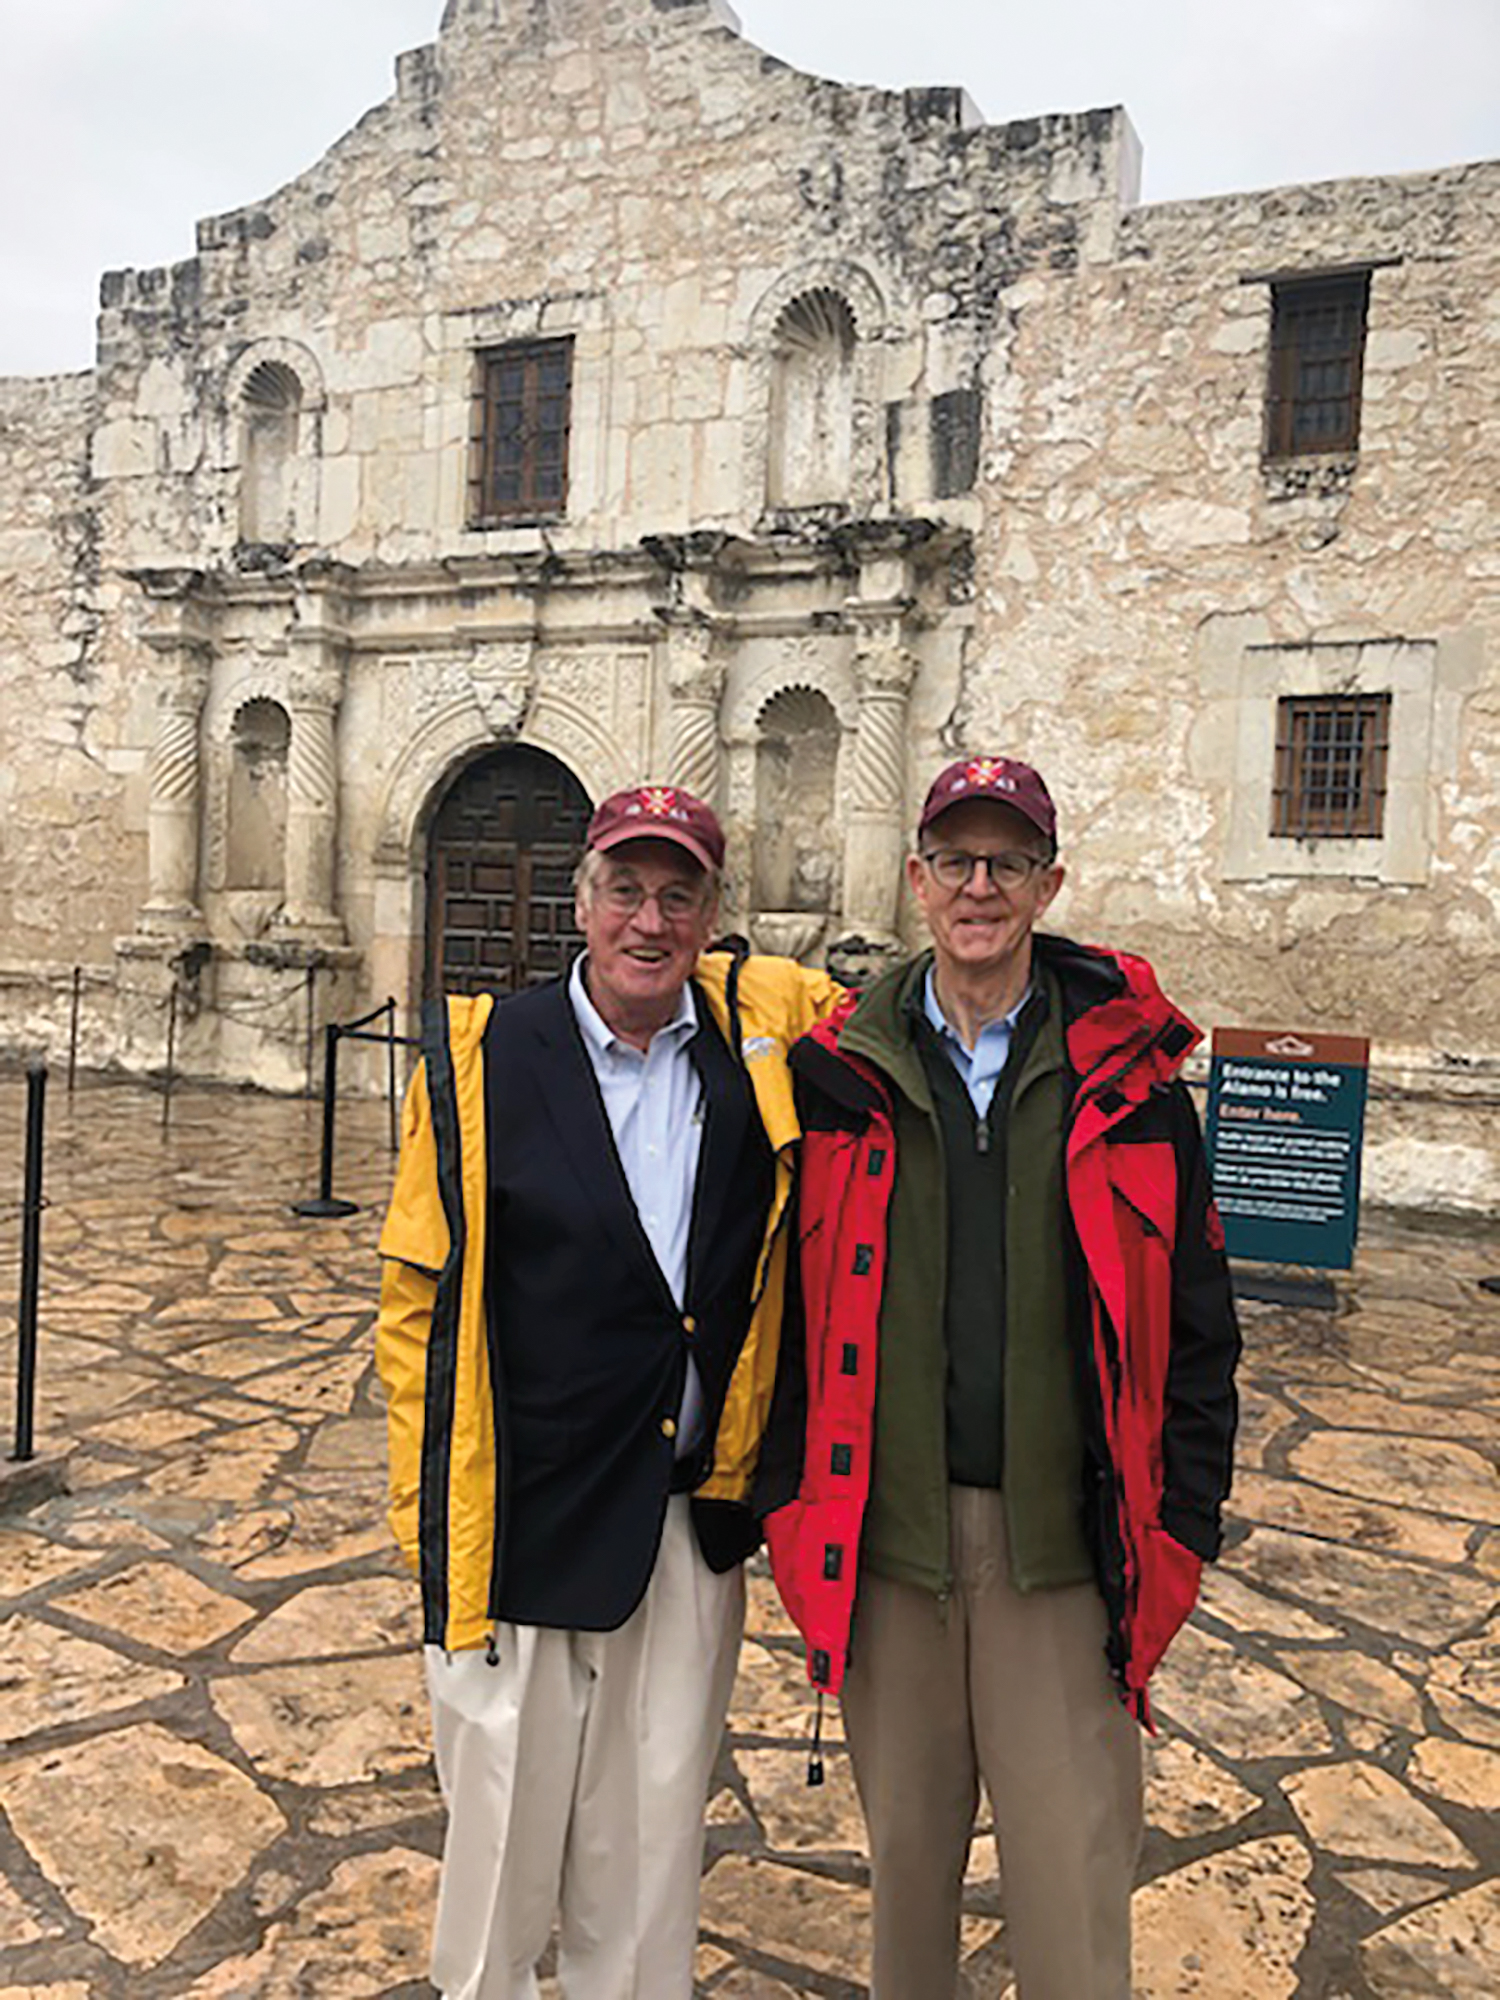 Formmates Dave Evans '63 (l.) and Ryland Howard remembered the Alamo in their 55th reunion caps.